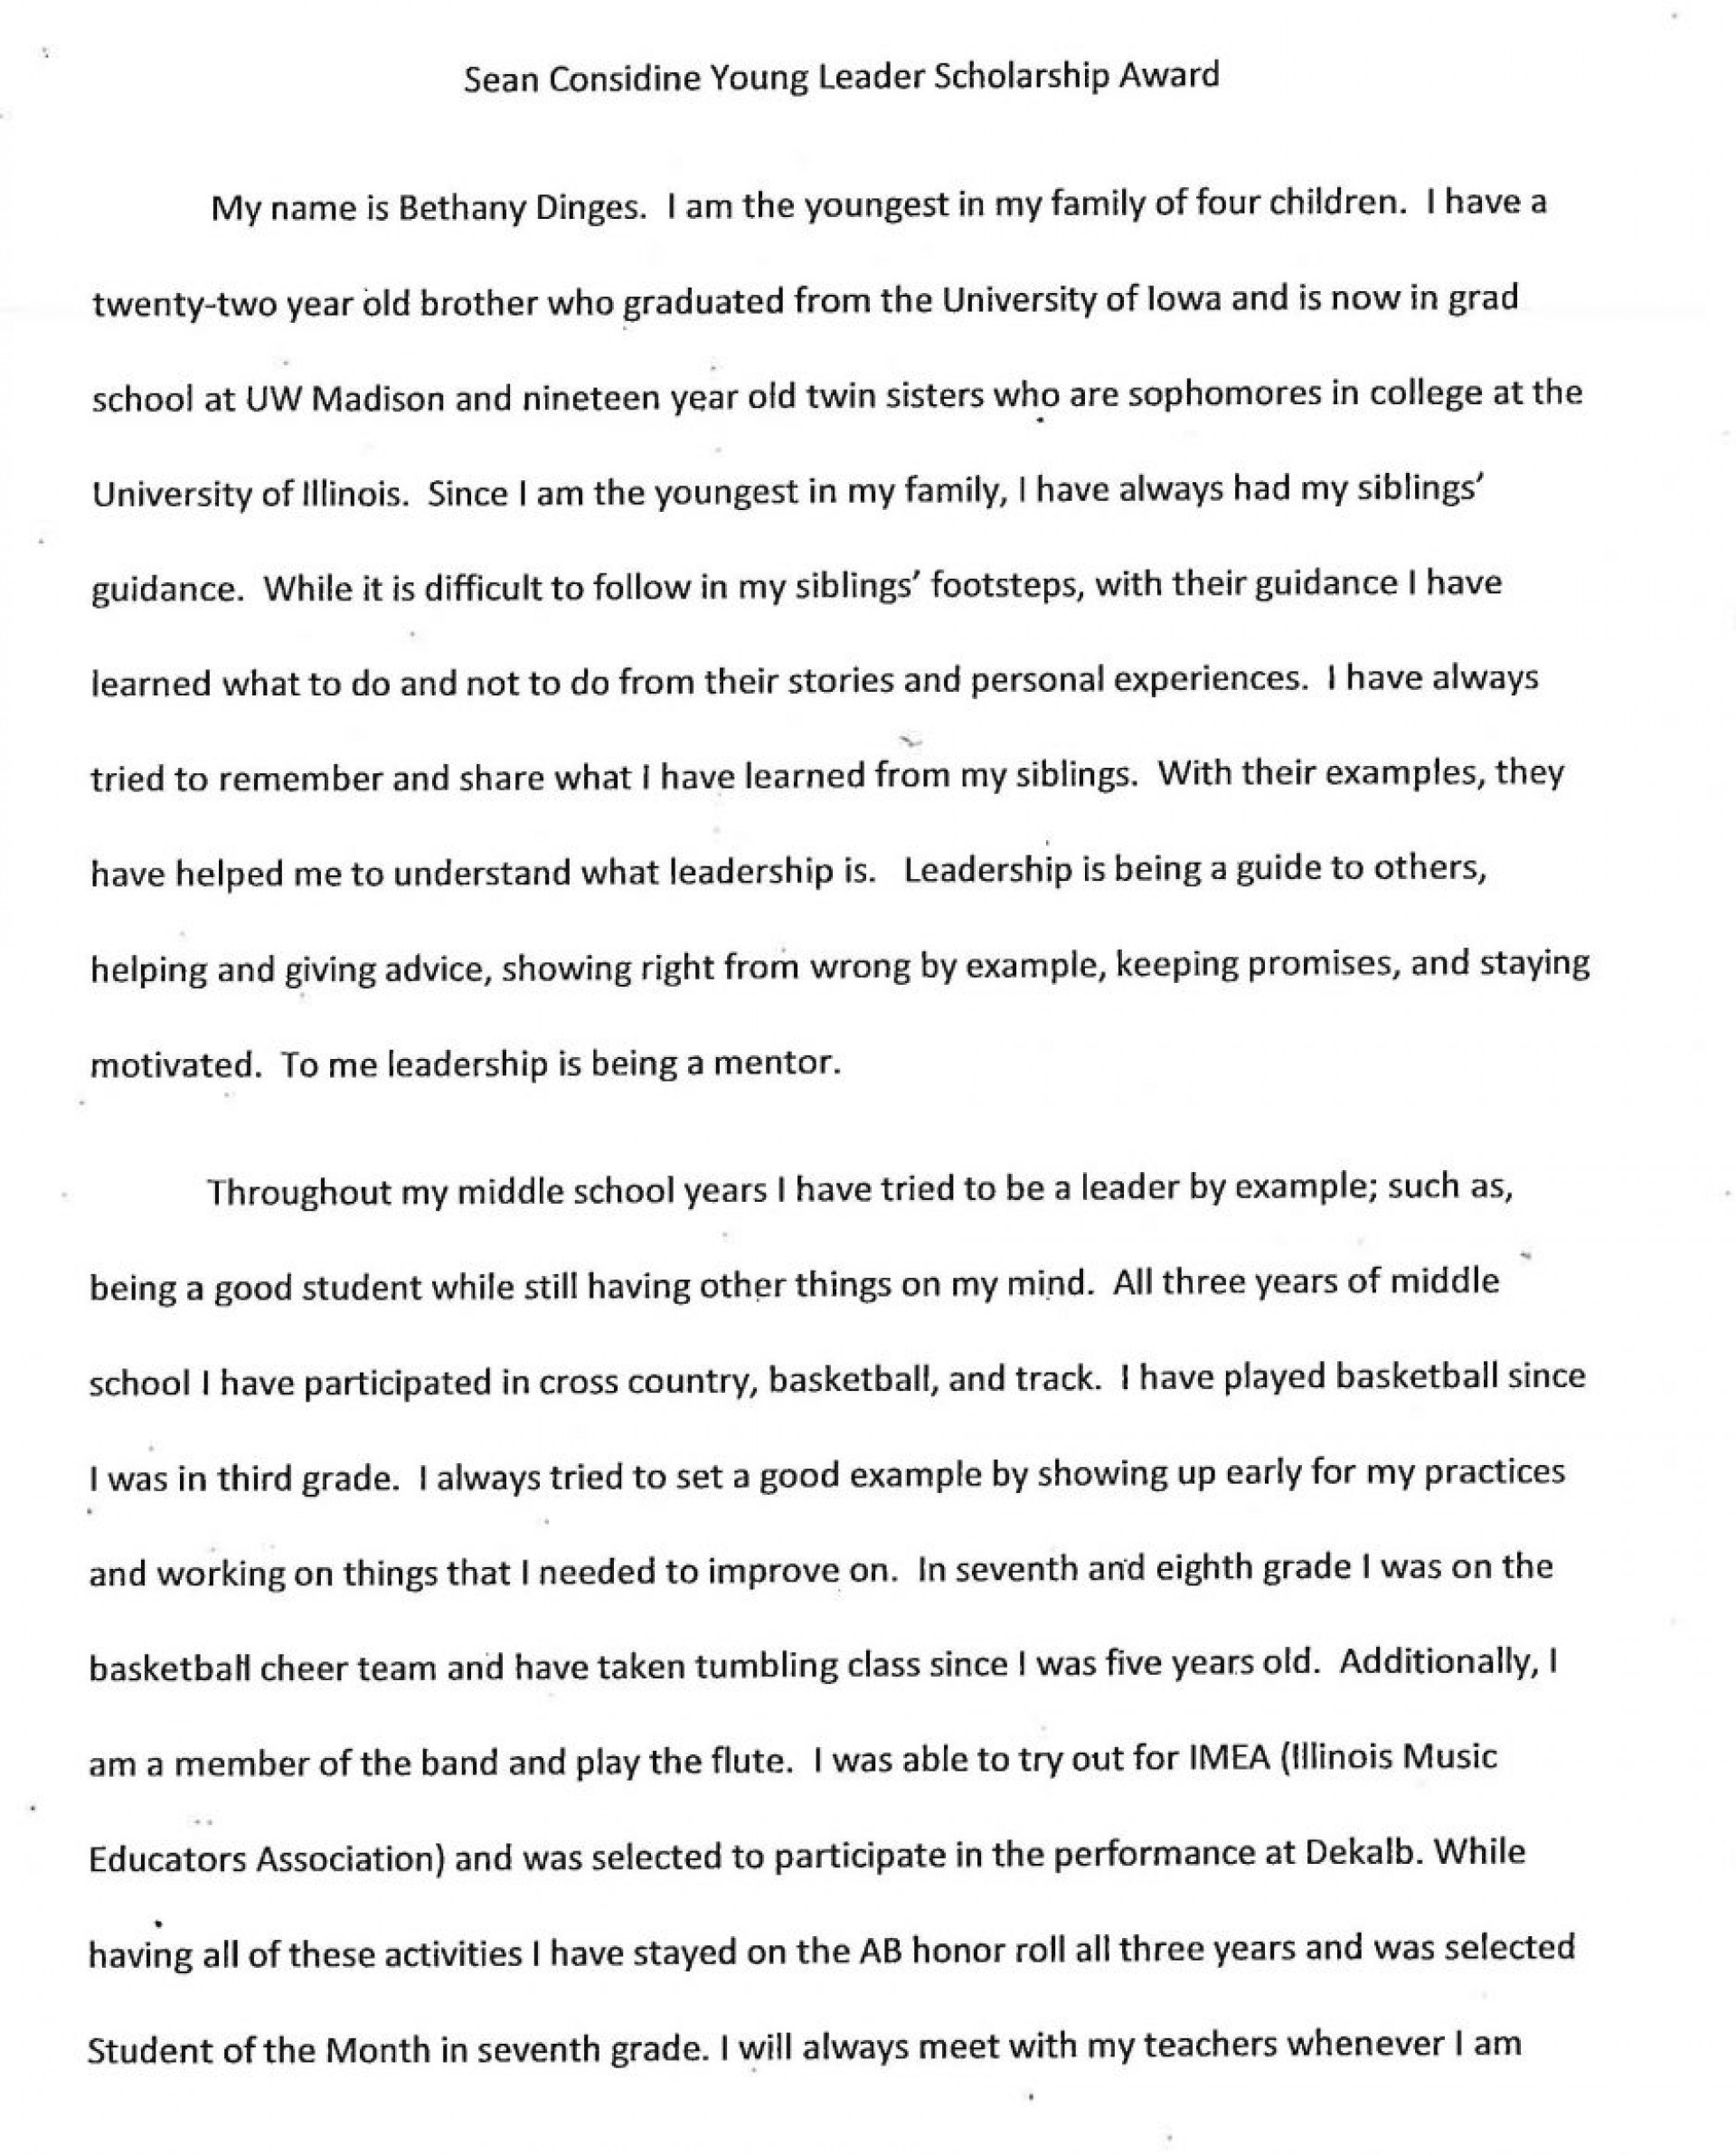 007 Studentuncil Essay Ideas Bethanyletter Page For Treasurer Elections Good Elementary School Election Goals President Examples Writing An Sample Persuasive 3rd Graders Secretary 936x1162 Phenomenal Student Council Middle College Example 1920